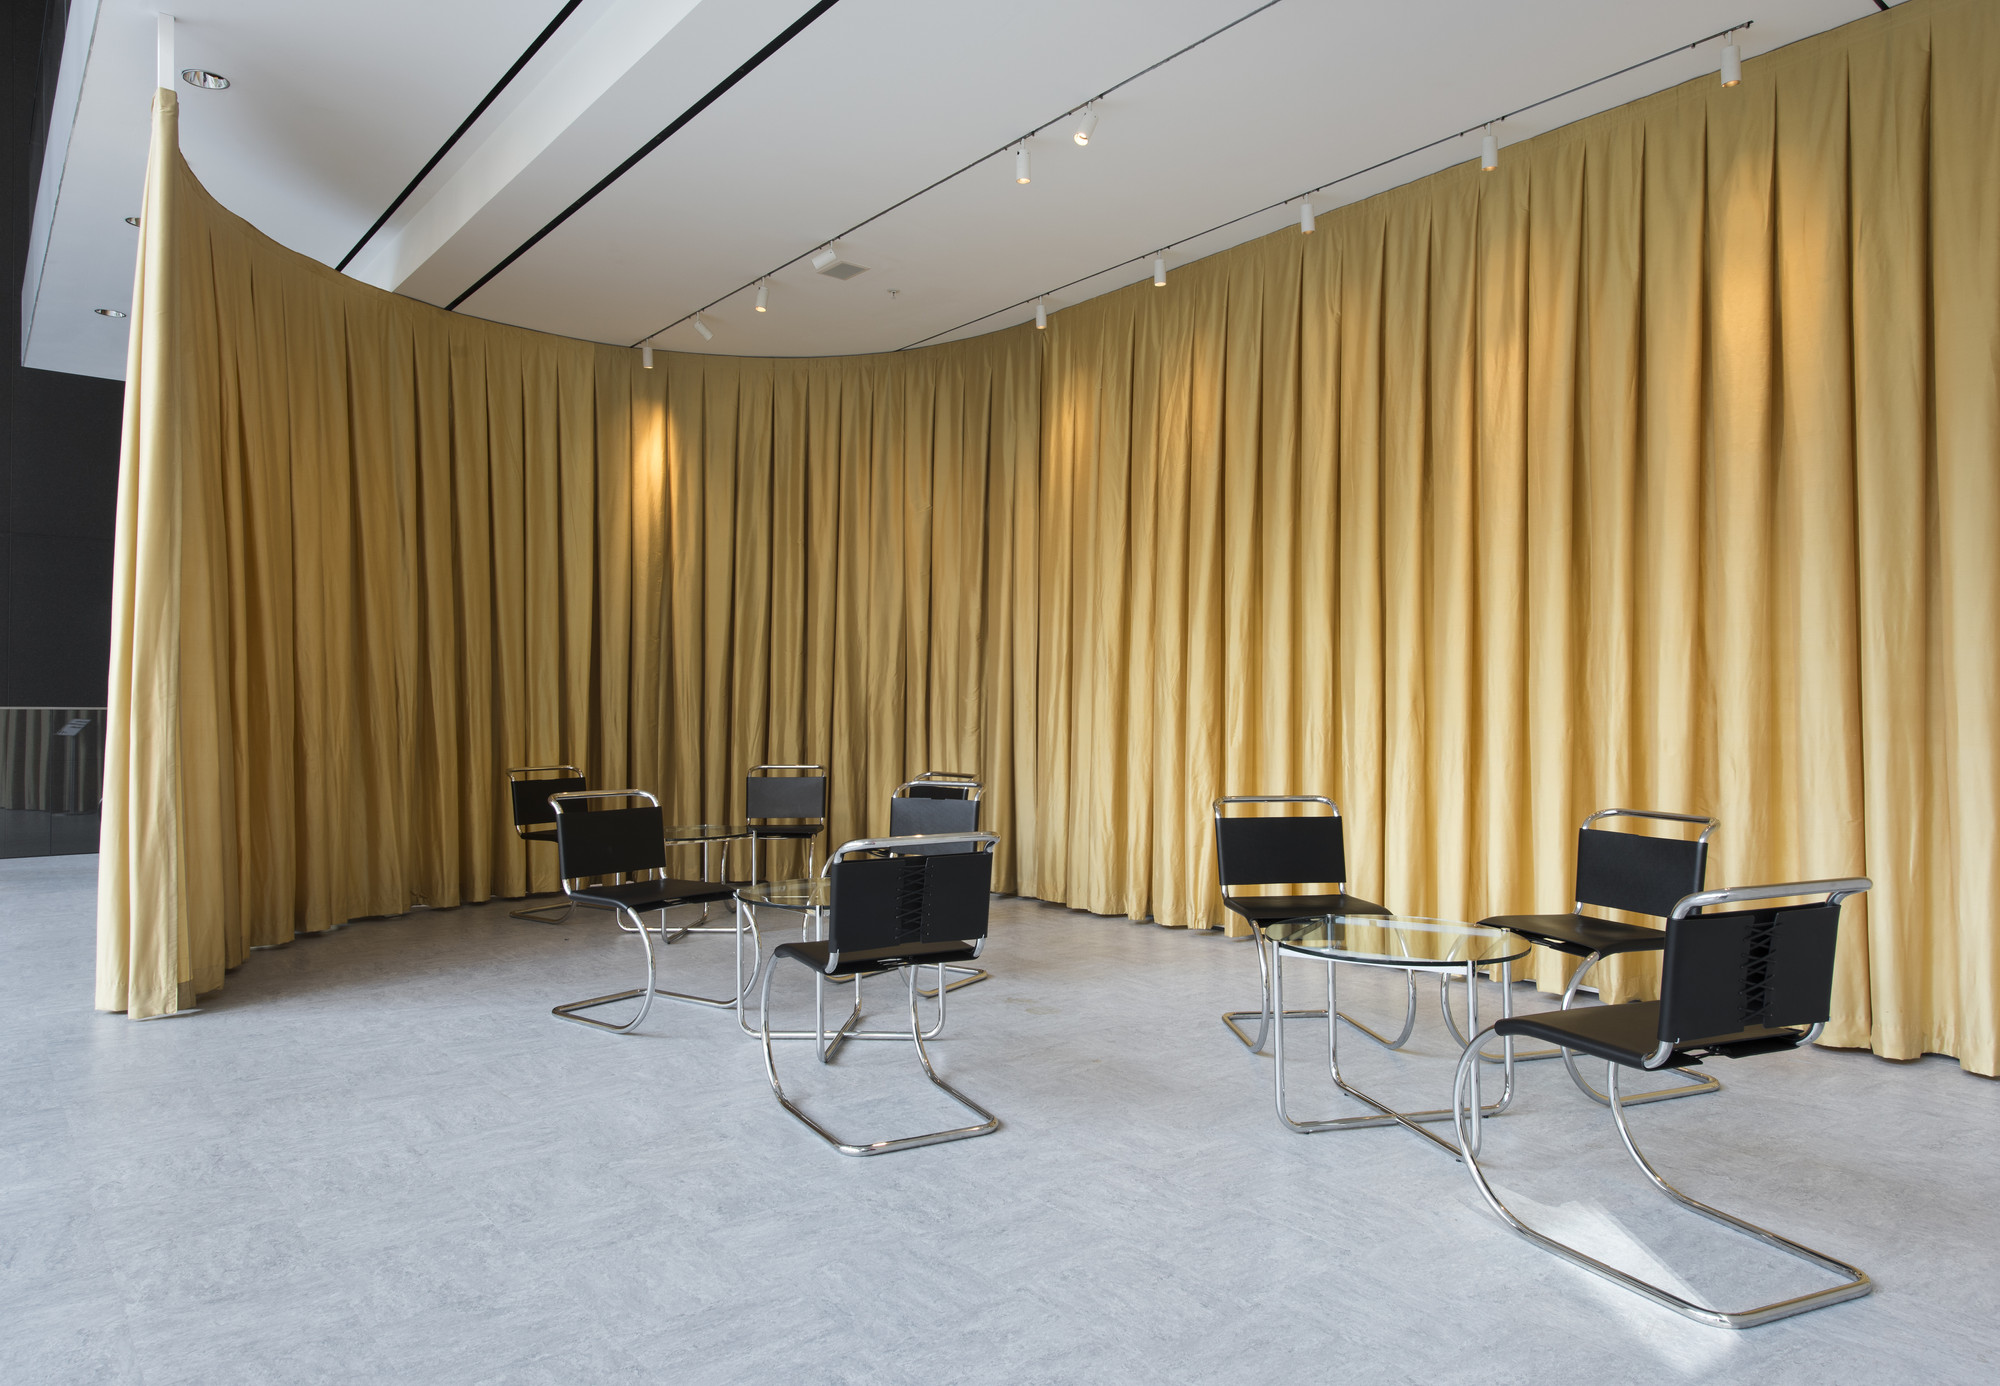 Ludwig mies van der rohe interior - Lilly Reich And Ludwig Mies Van Der Rohe The Velvet And Silk Cafe 1927